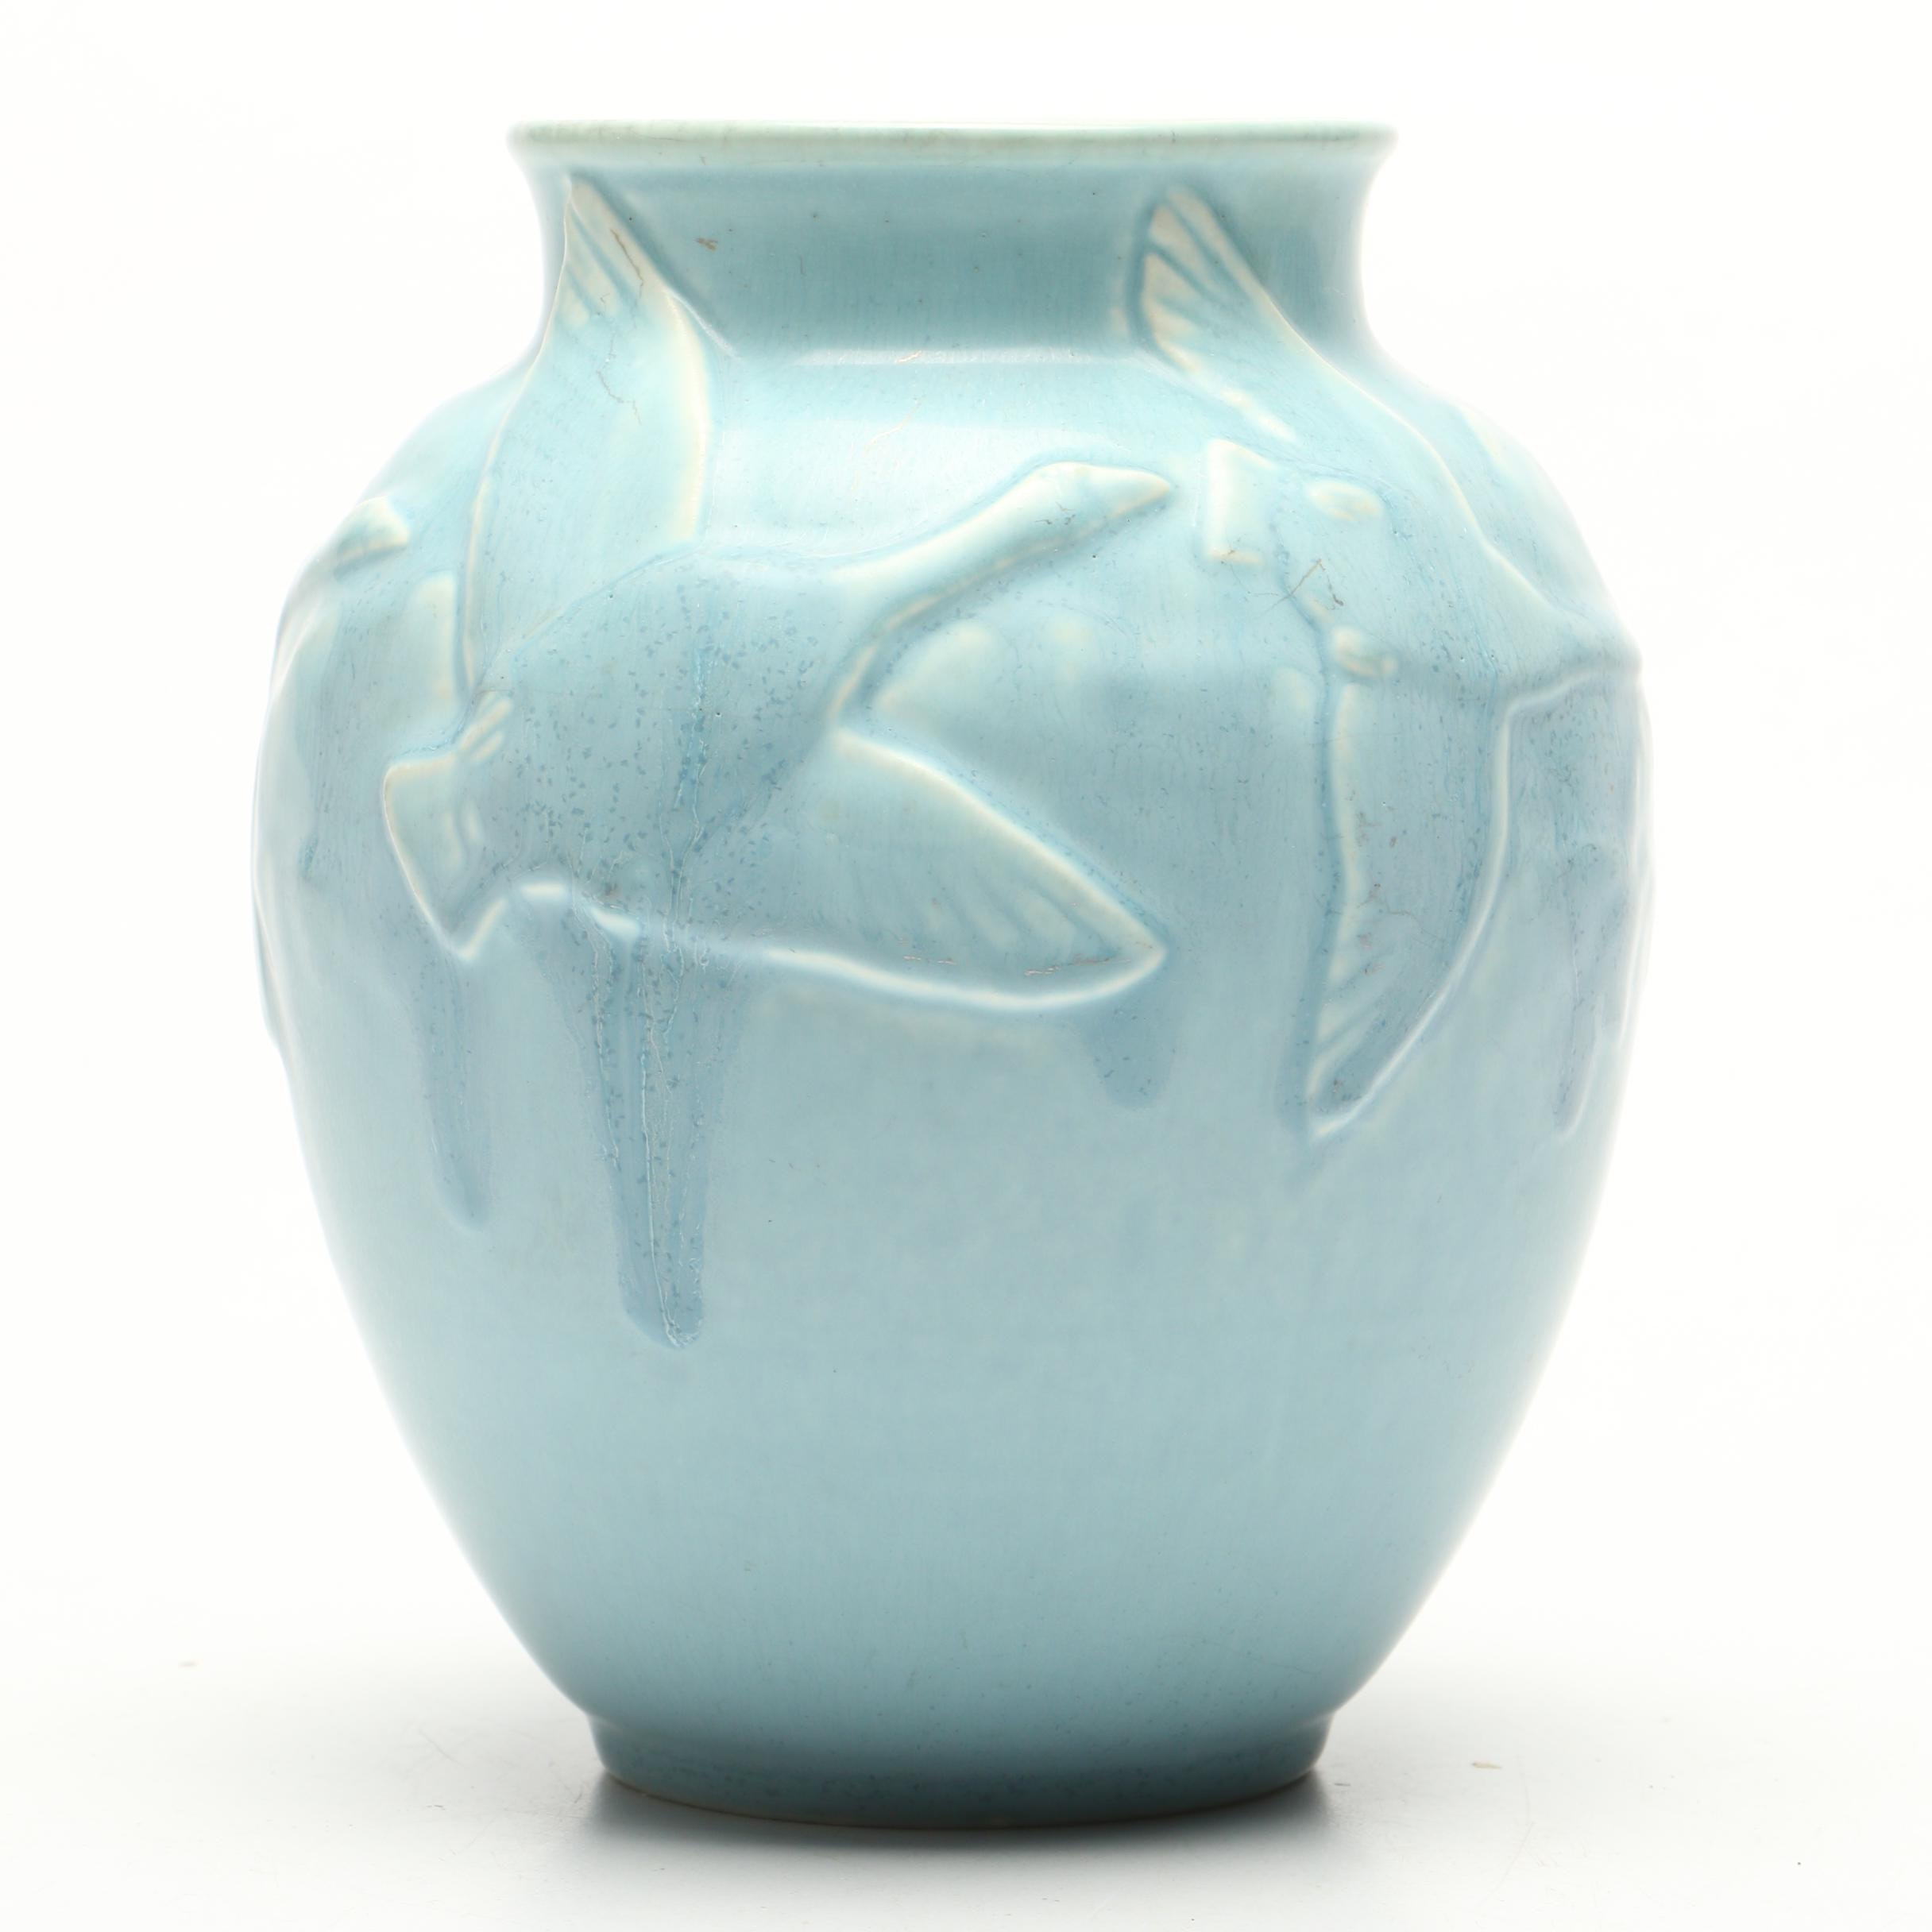 Rookwood Pottery Vase with Flying Geese Pattern, 1943